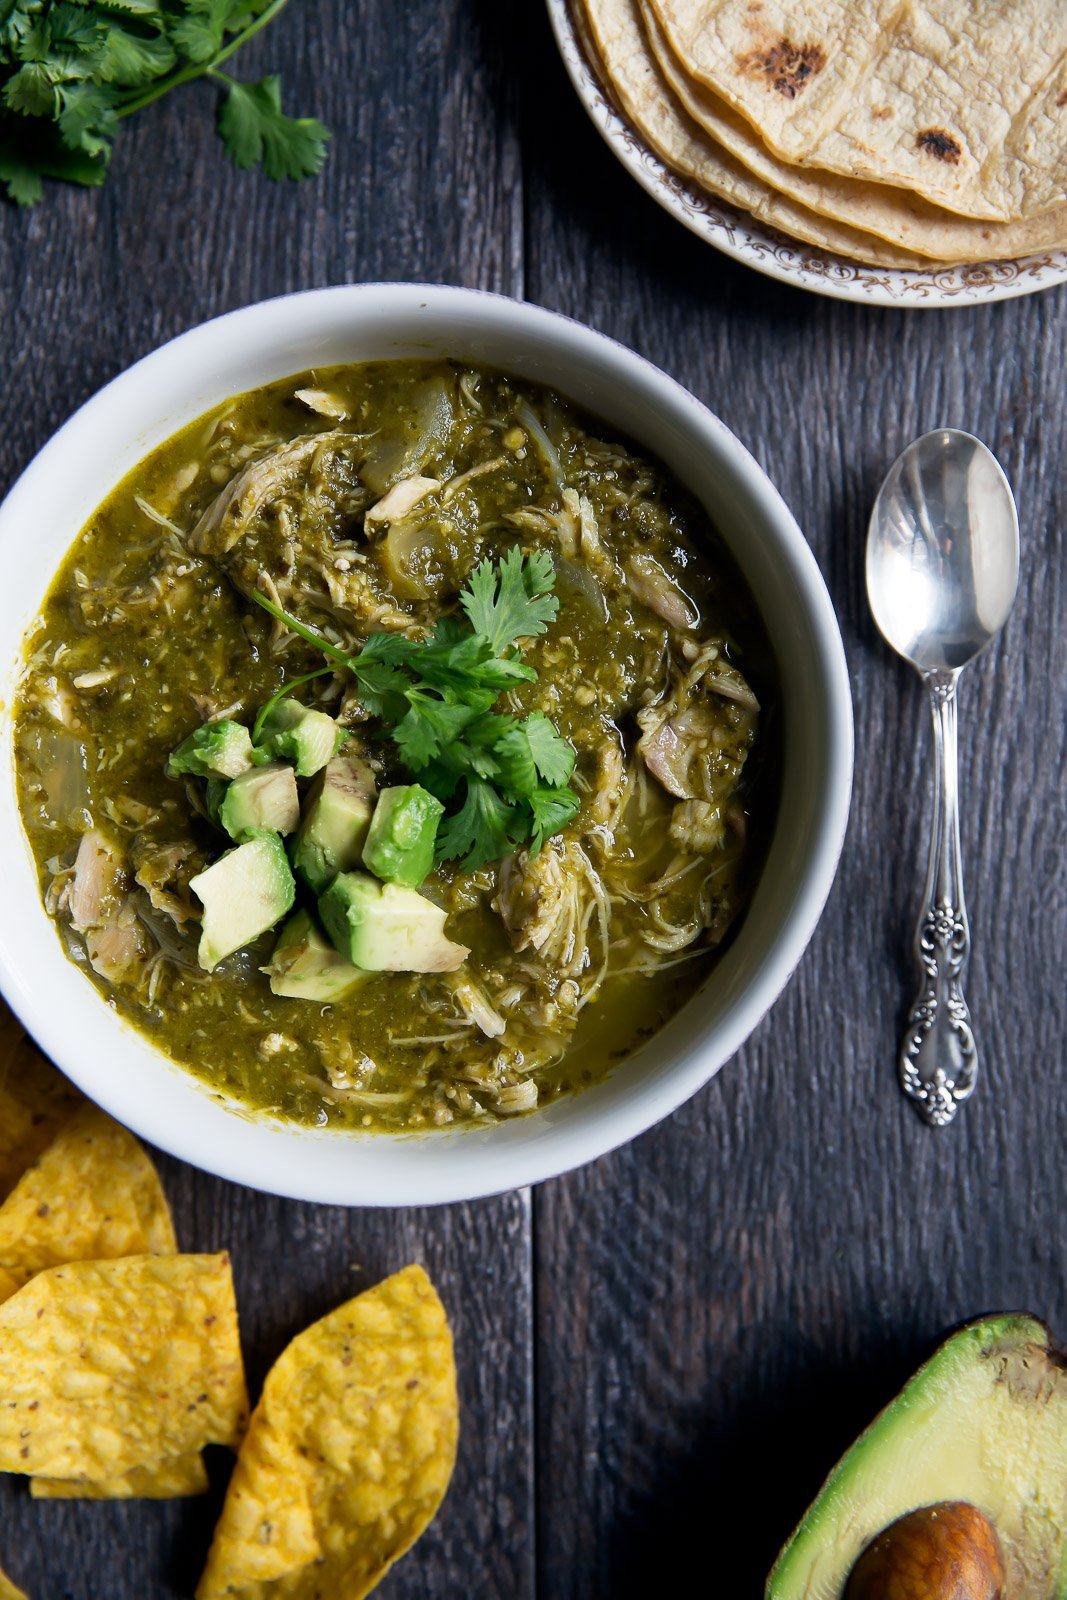 Green chicken chili in a white bowl with avocado and cilantro